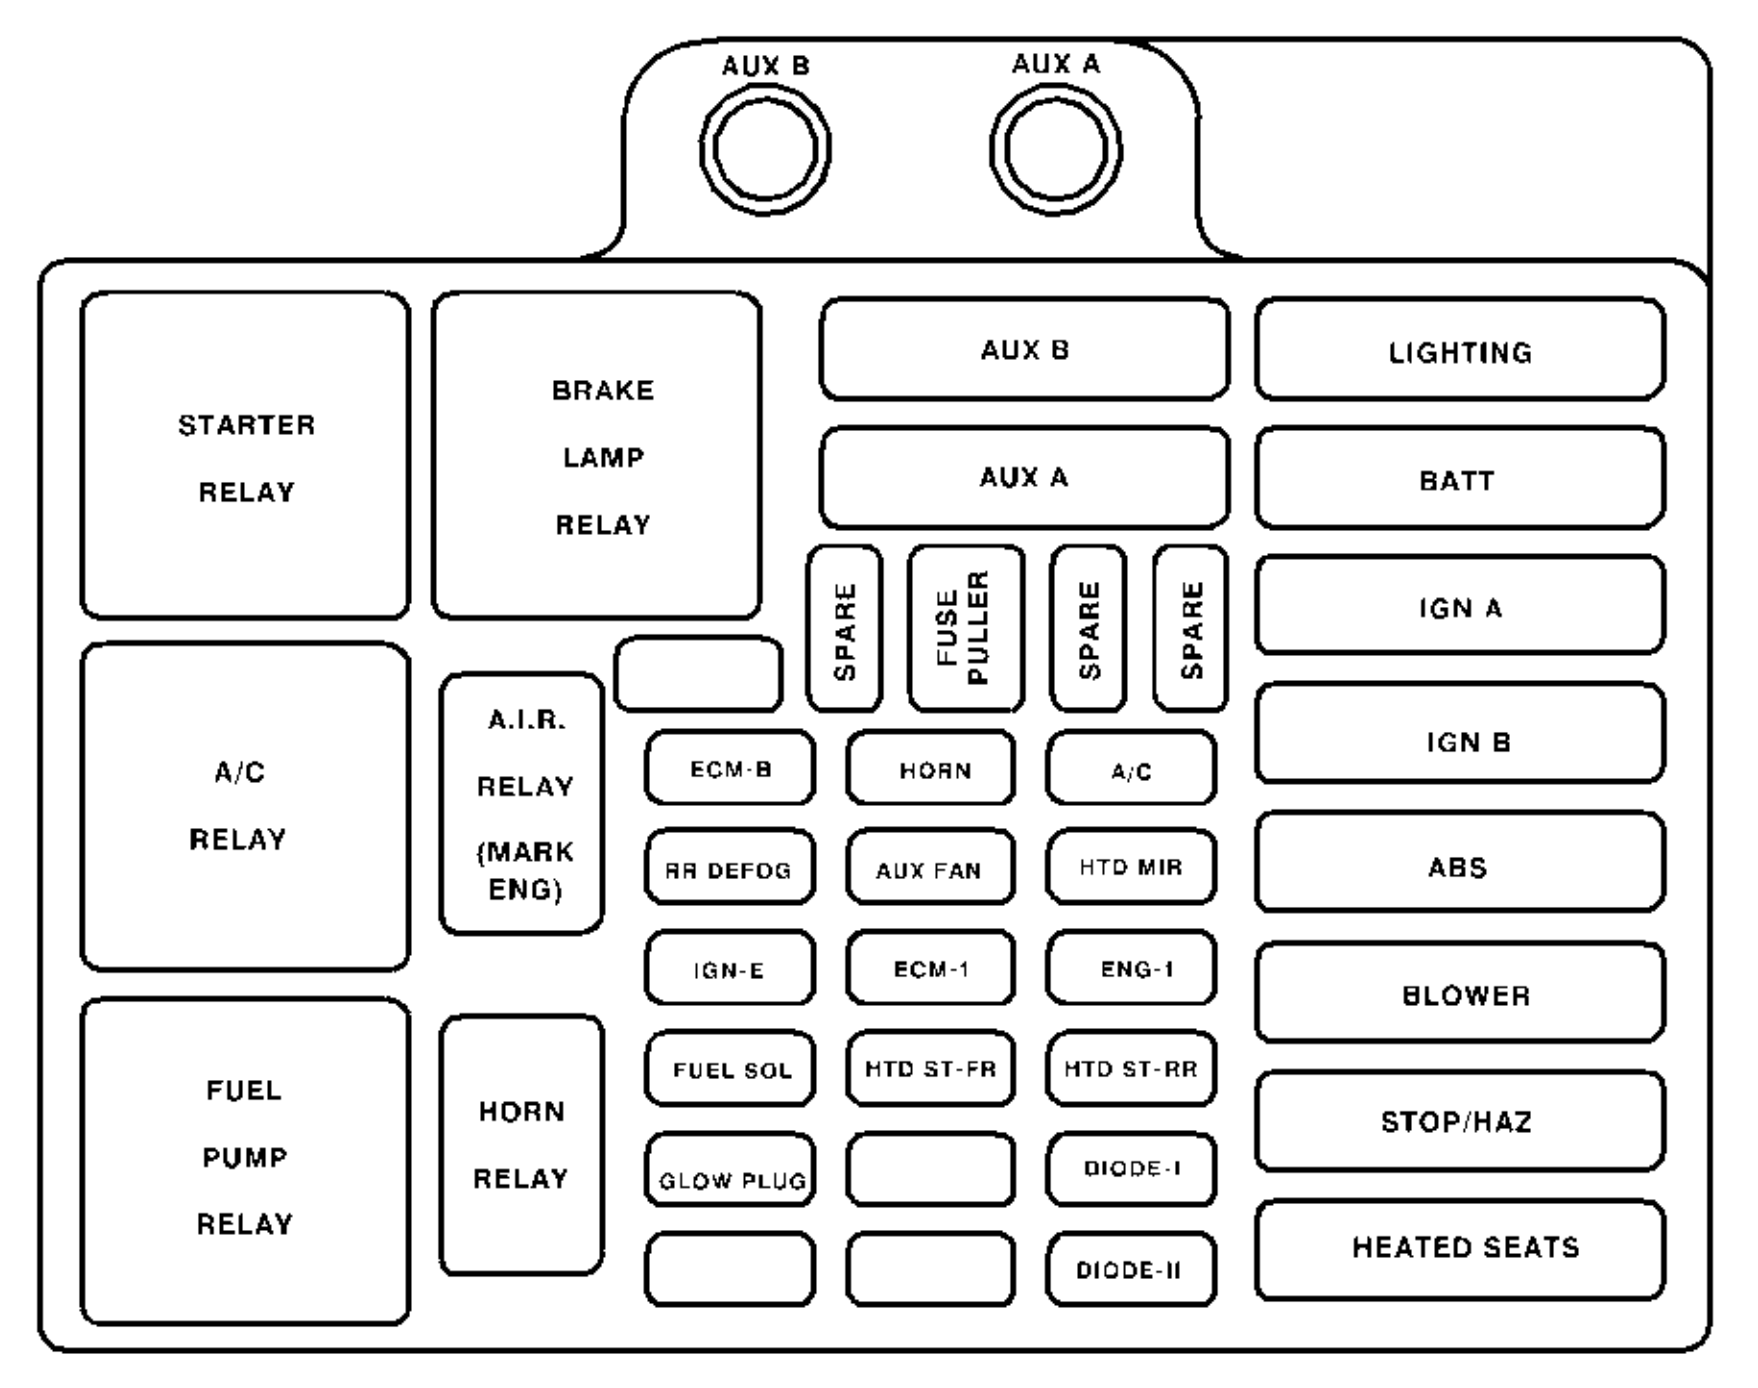 hight resolution of 1998 tahoe fuse box wiring diagram todays 1979 chevy fuse box diagram 1998 chevy fuse box diagram